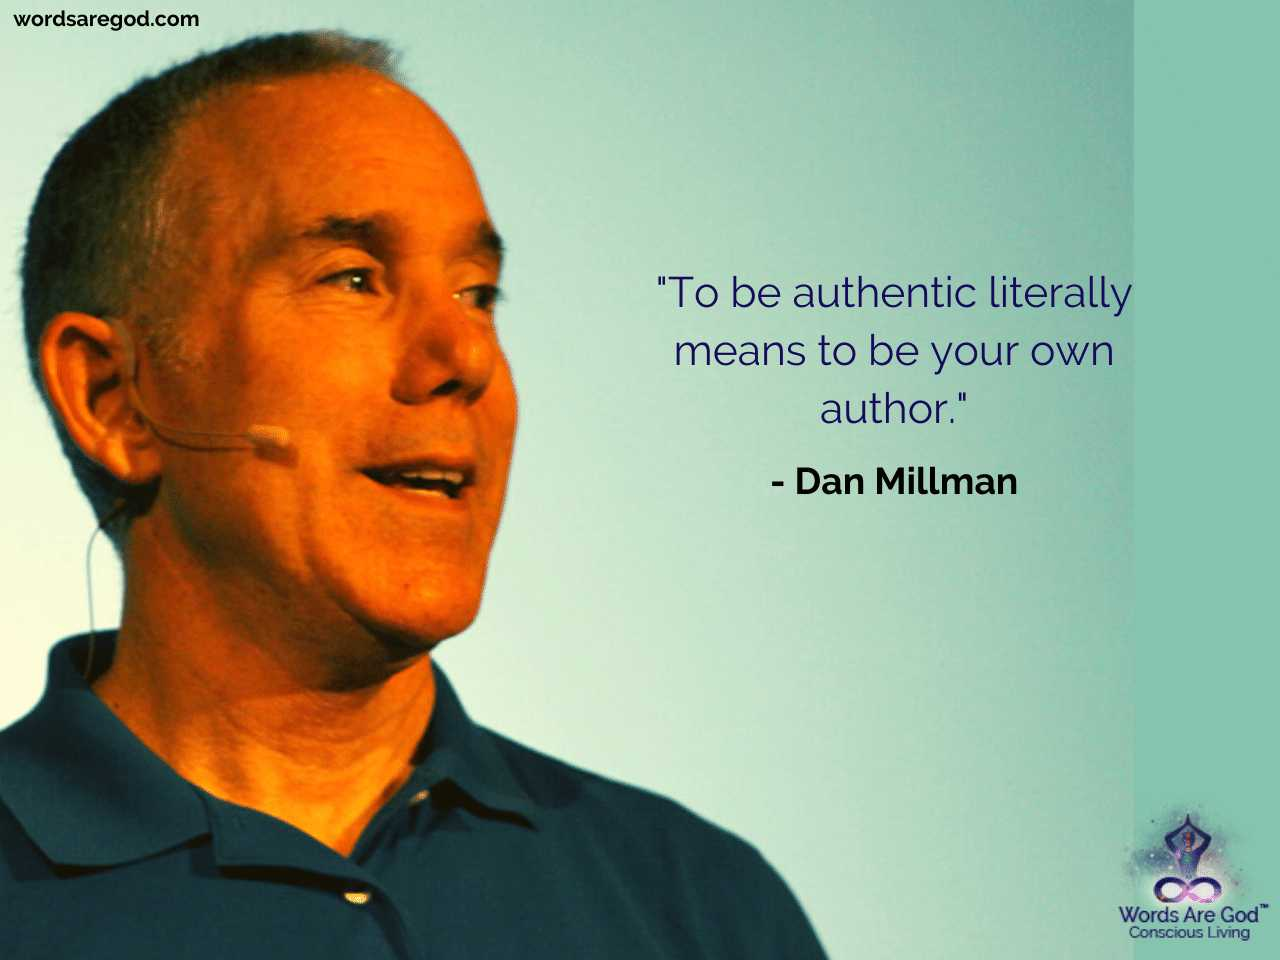 Dan Millman Best Quote by Dan Millman